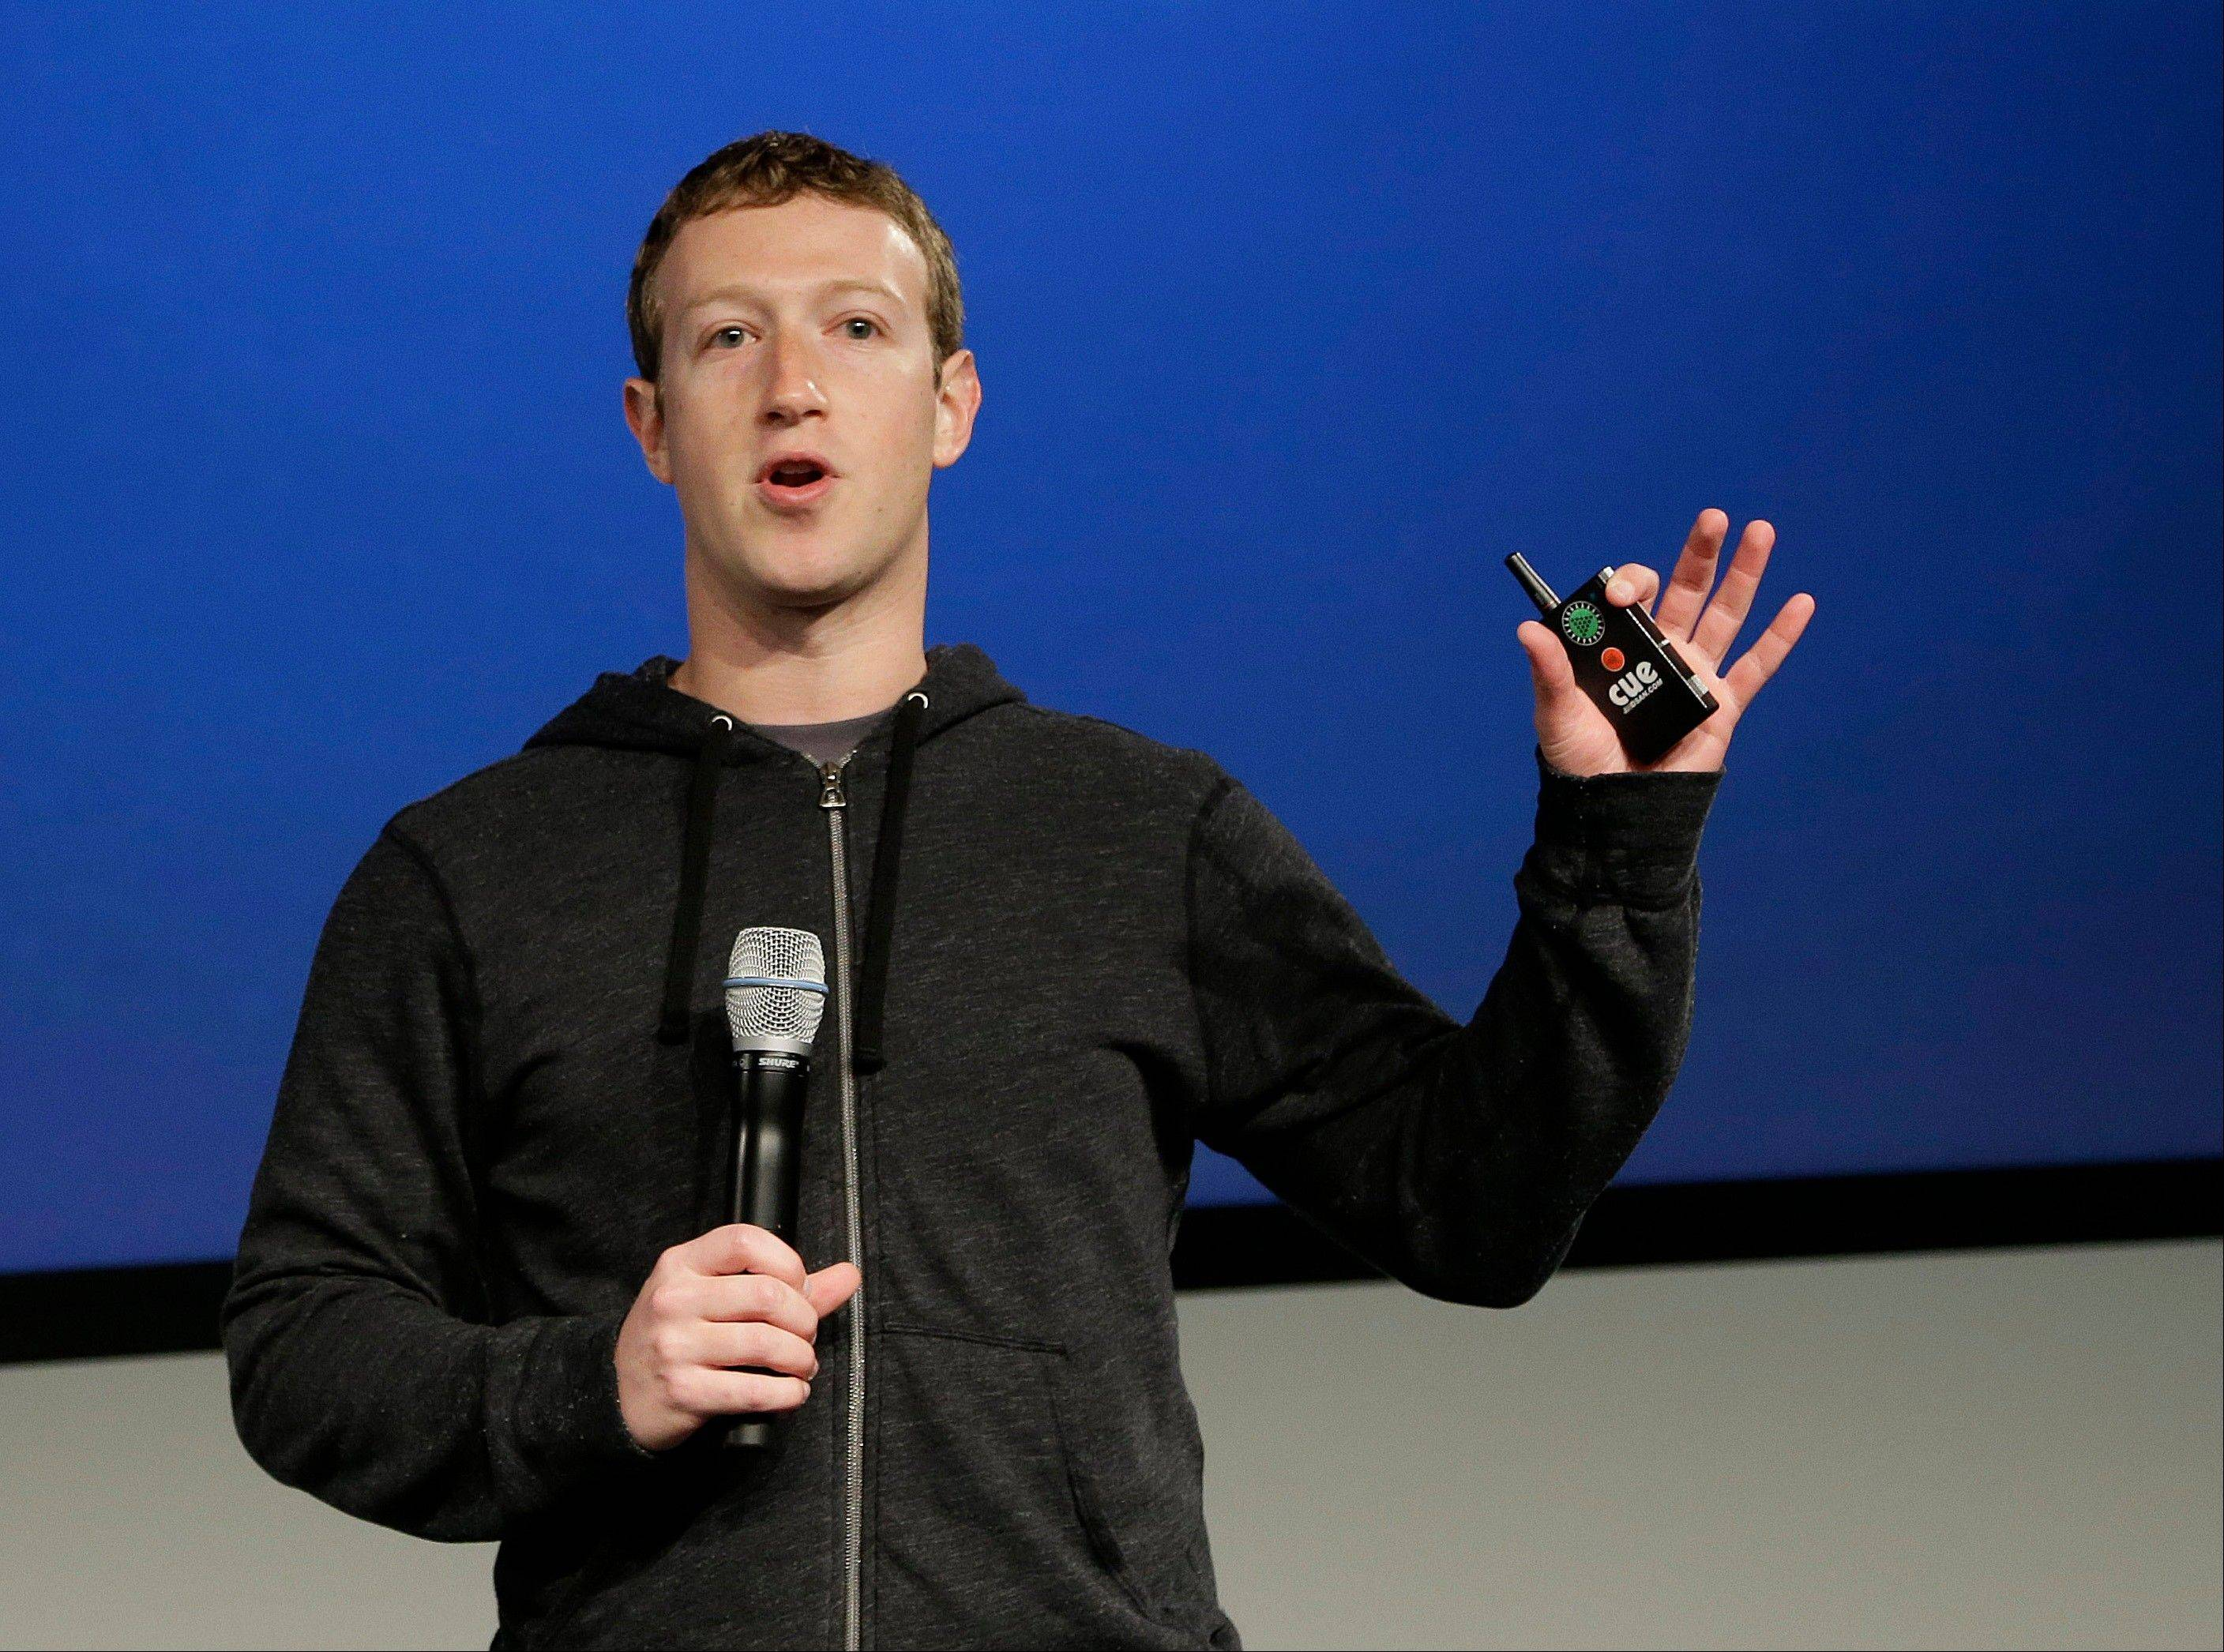 Facebook CEO Mark Zuckerberg has formally launched a political group aimed at revamping immigration policy, boosting education and encouraging investment in scientific research. Zuckerberg announced the formation of Fwd.us in an op-ed article in The Washington Post late Wednesday.